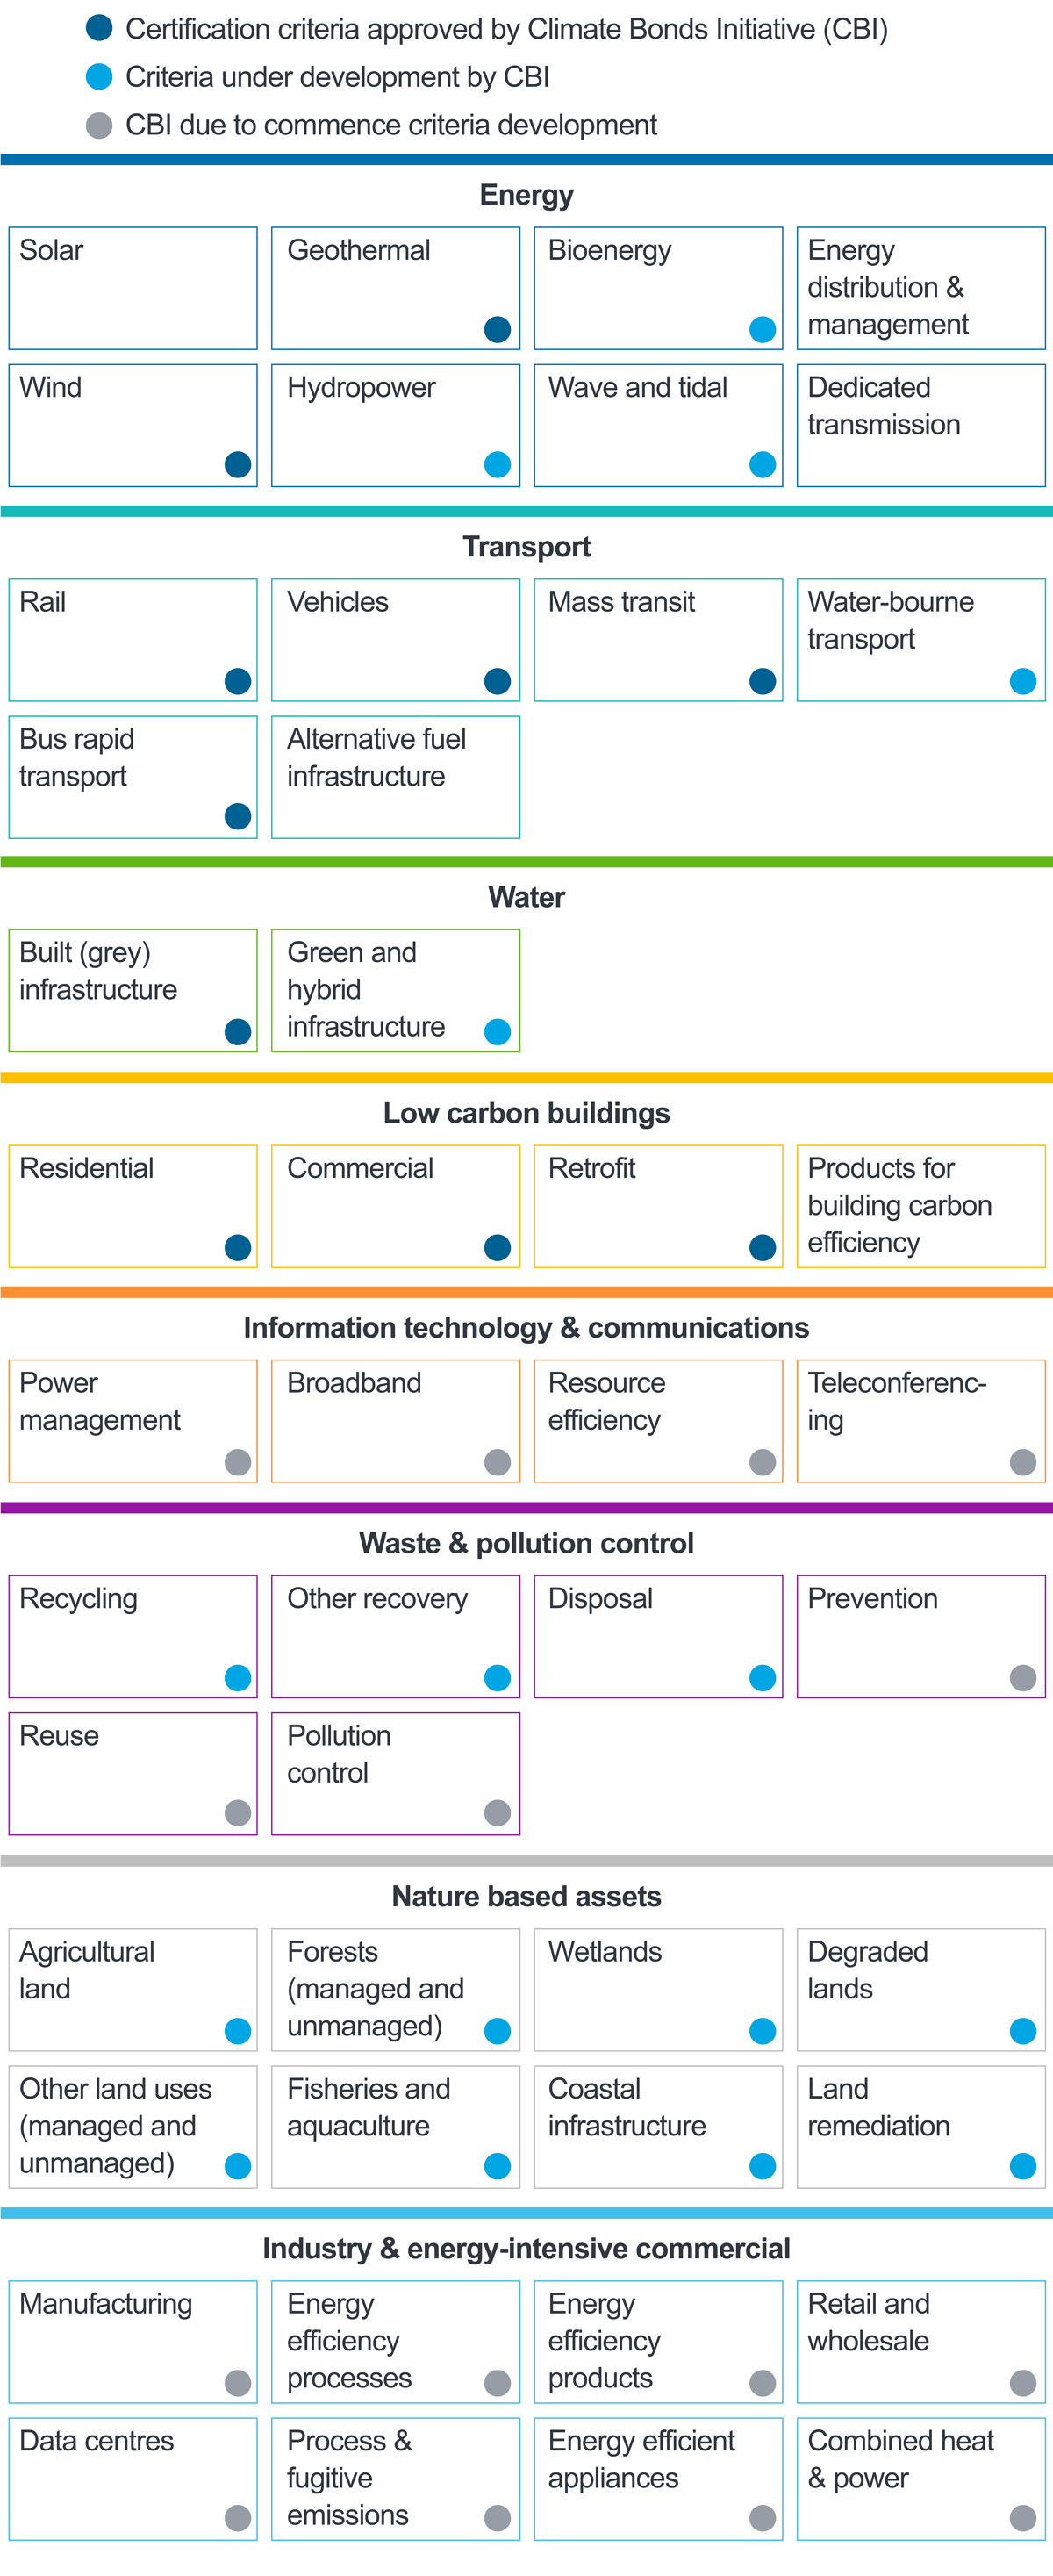 Diagram of common definitions of green bonds classifications